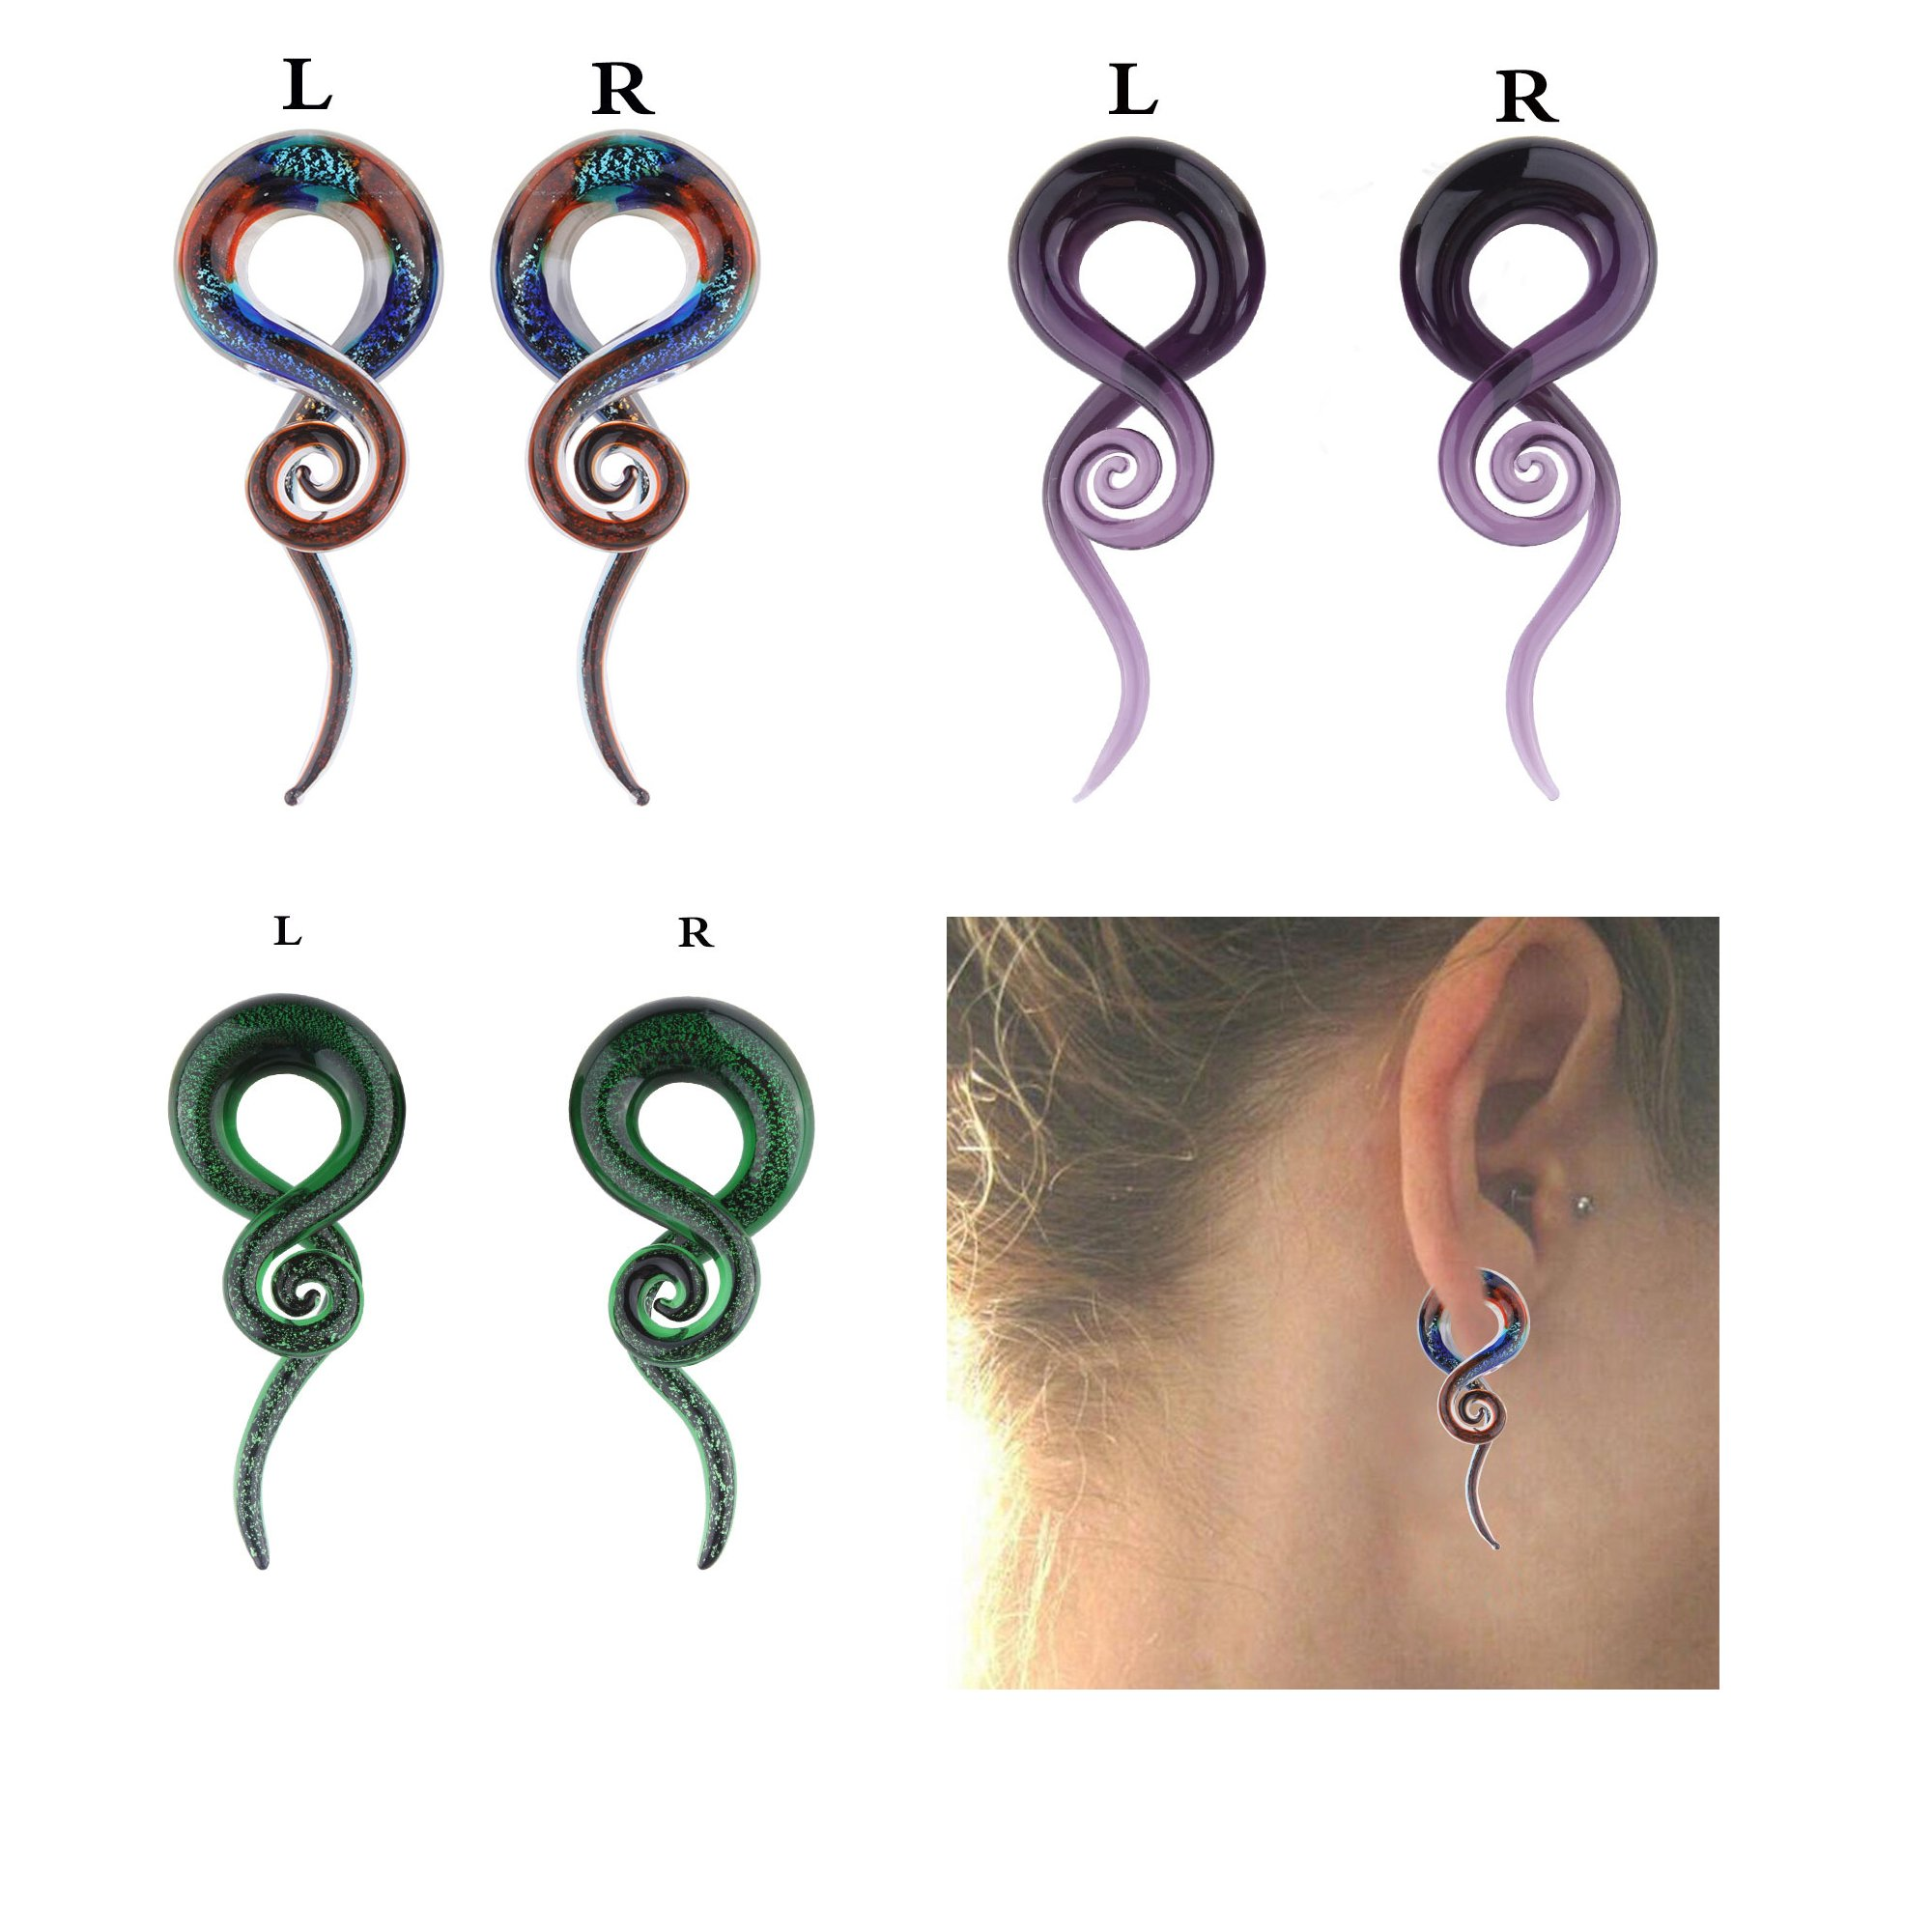 3 Pairs Glass Ear Spiral Taper Plugs Ear Expander Ear Piercing Tunnel Plugs Gauges (10mm=00G)